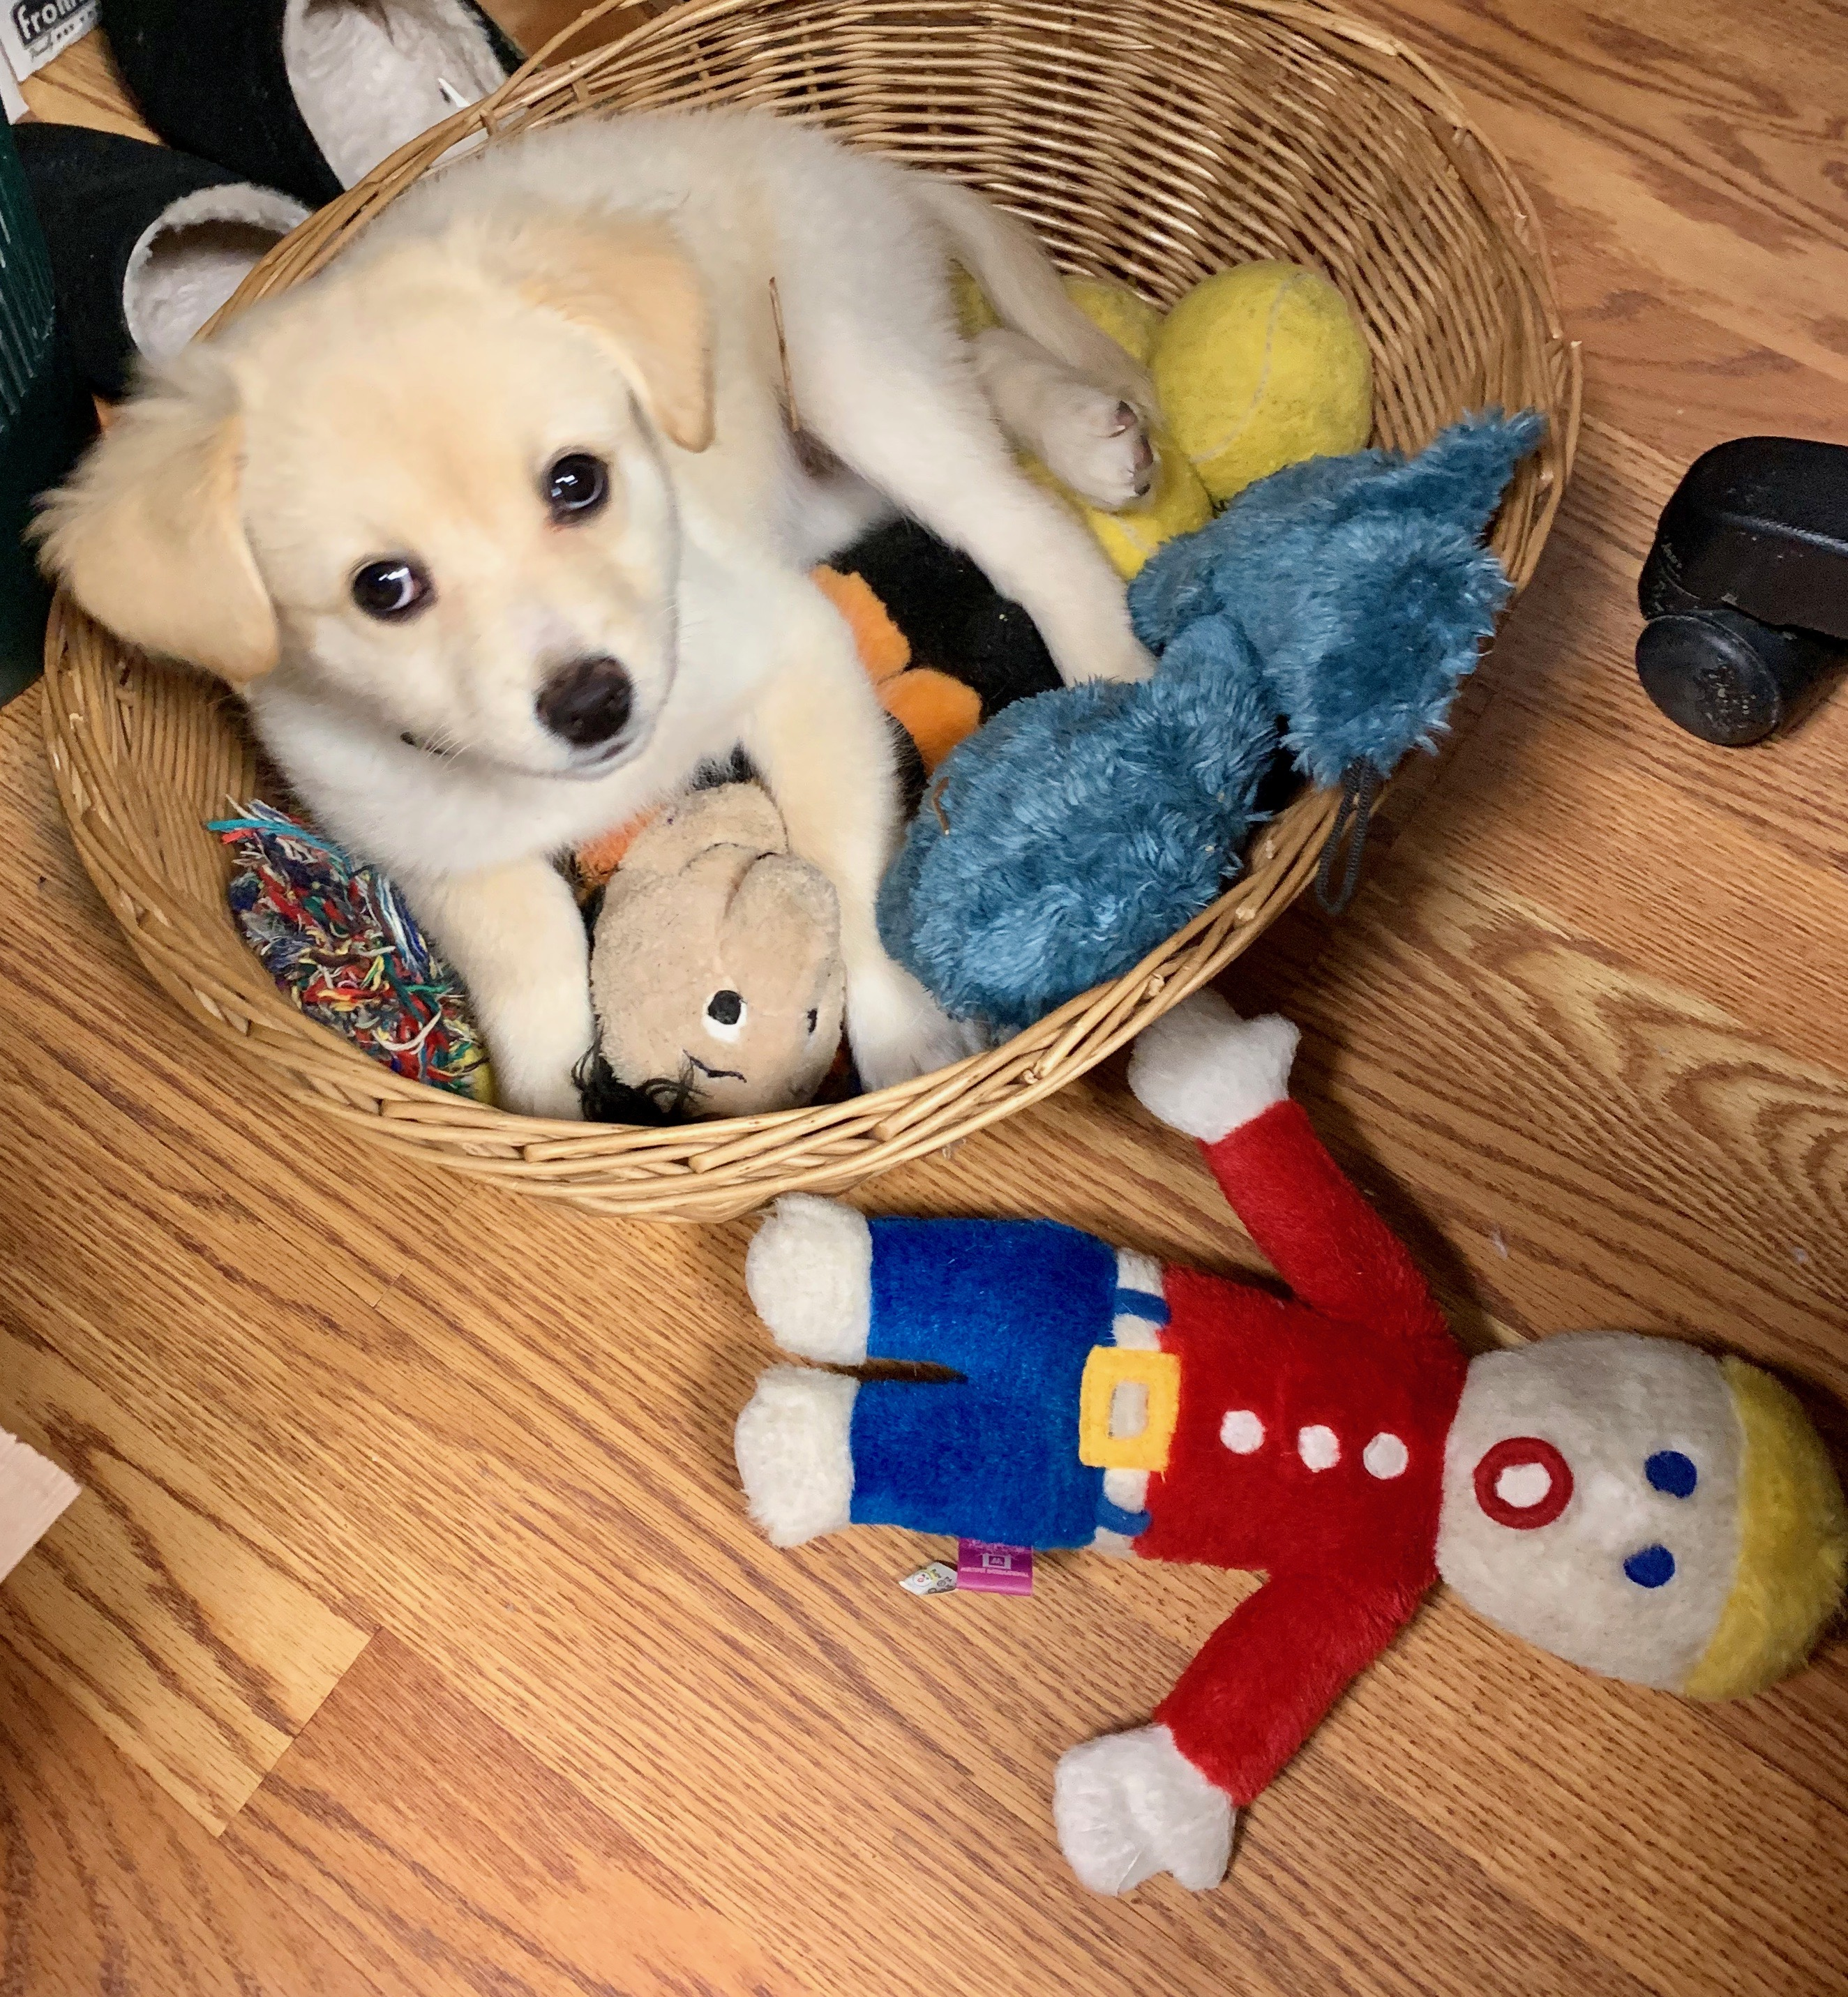 This toy basket is COOL!